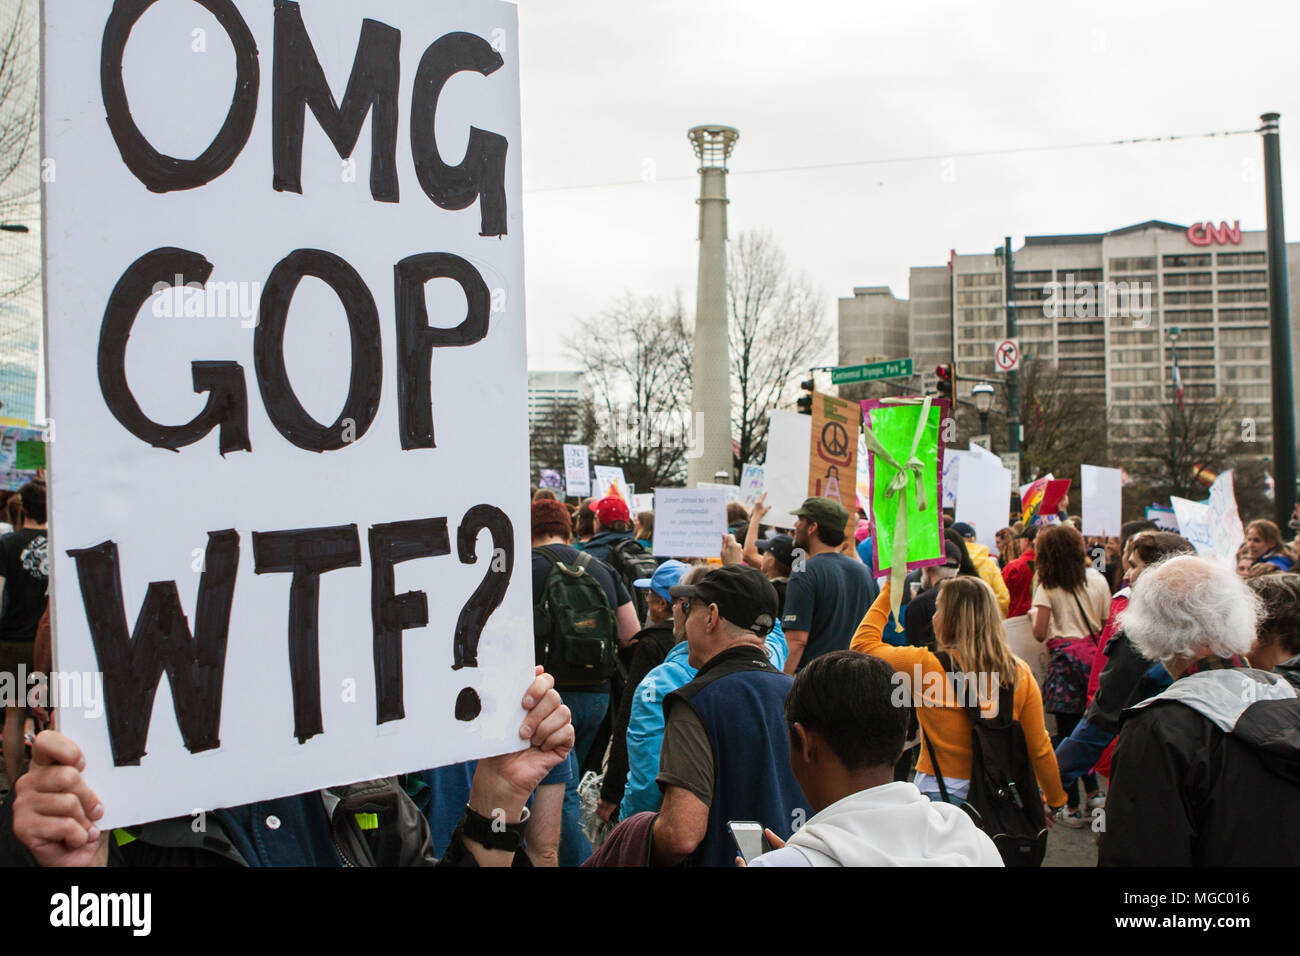 "A woman holds a sign that says ""OMG, GOP, WTF?"" as thousands of protesters pass by in the March For Women on January 21, 2016 in Atlanta, GA. Stock Photo"